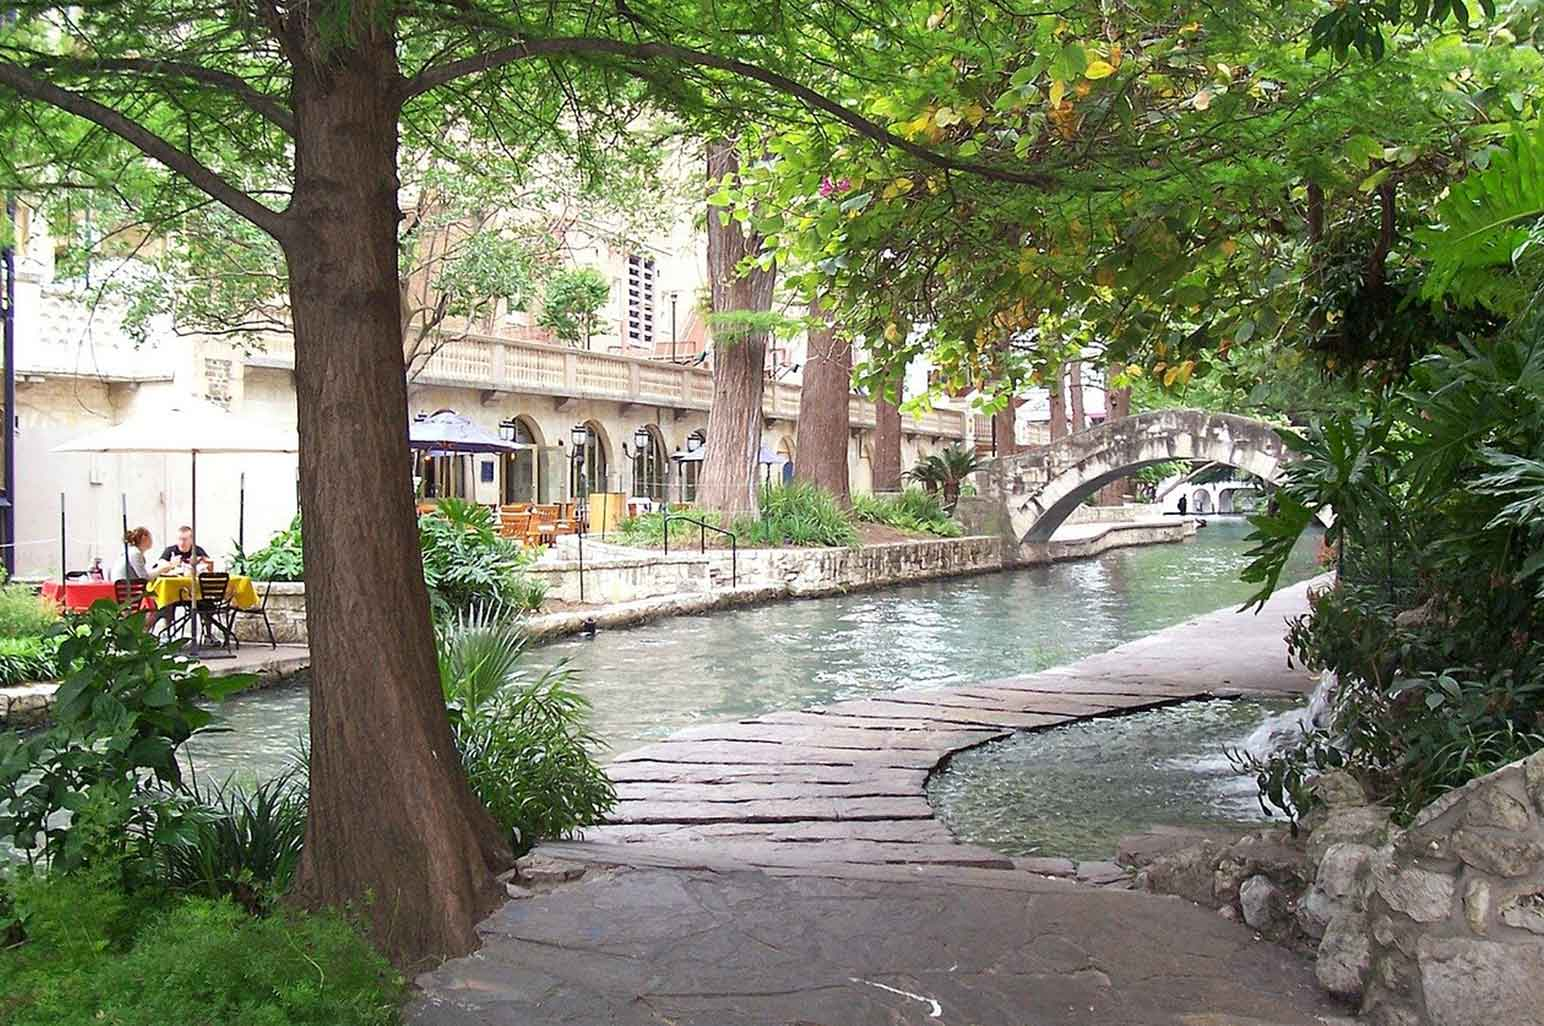 The Nine Most Underrated US Cities to Visit with Family - San Antonio